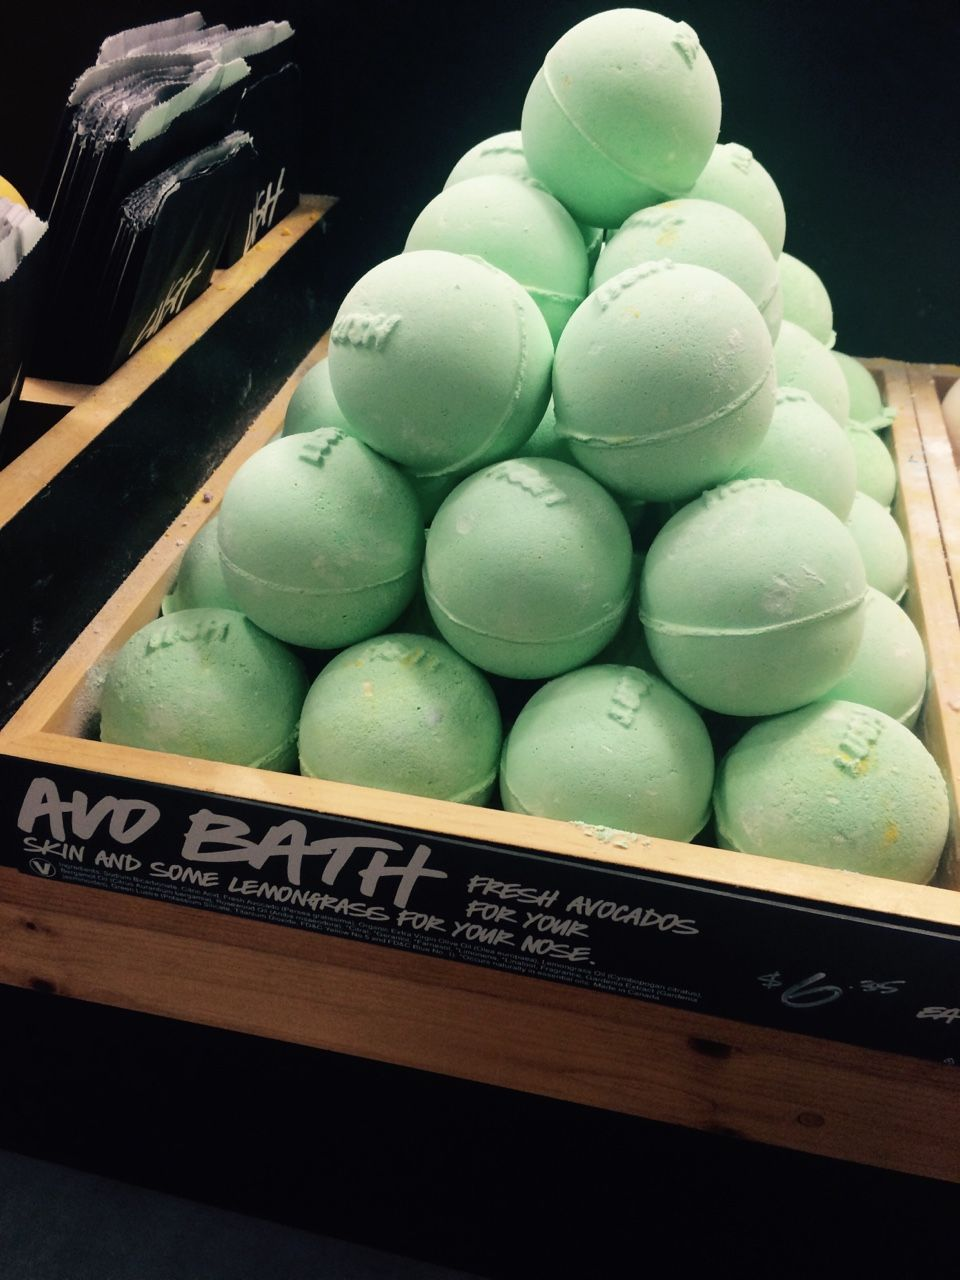 Avobomb Love This Bath Bomb Smells So Good And Make Your Bath Look Like Green Slime Would Totally Recommend It Lush Bath Bombs Lush Products Lush Bath